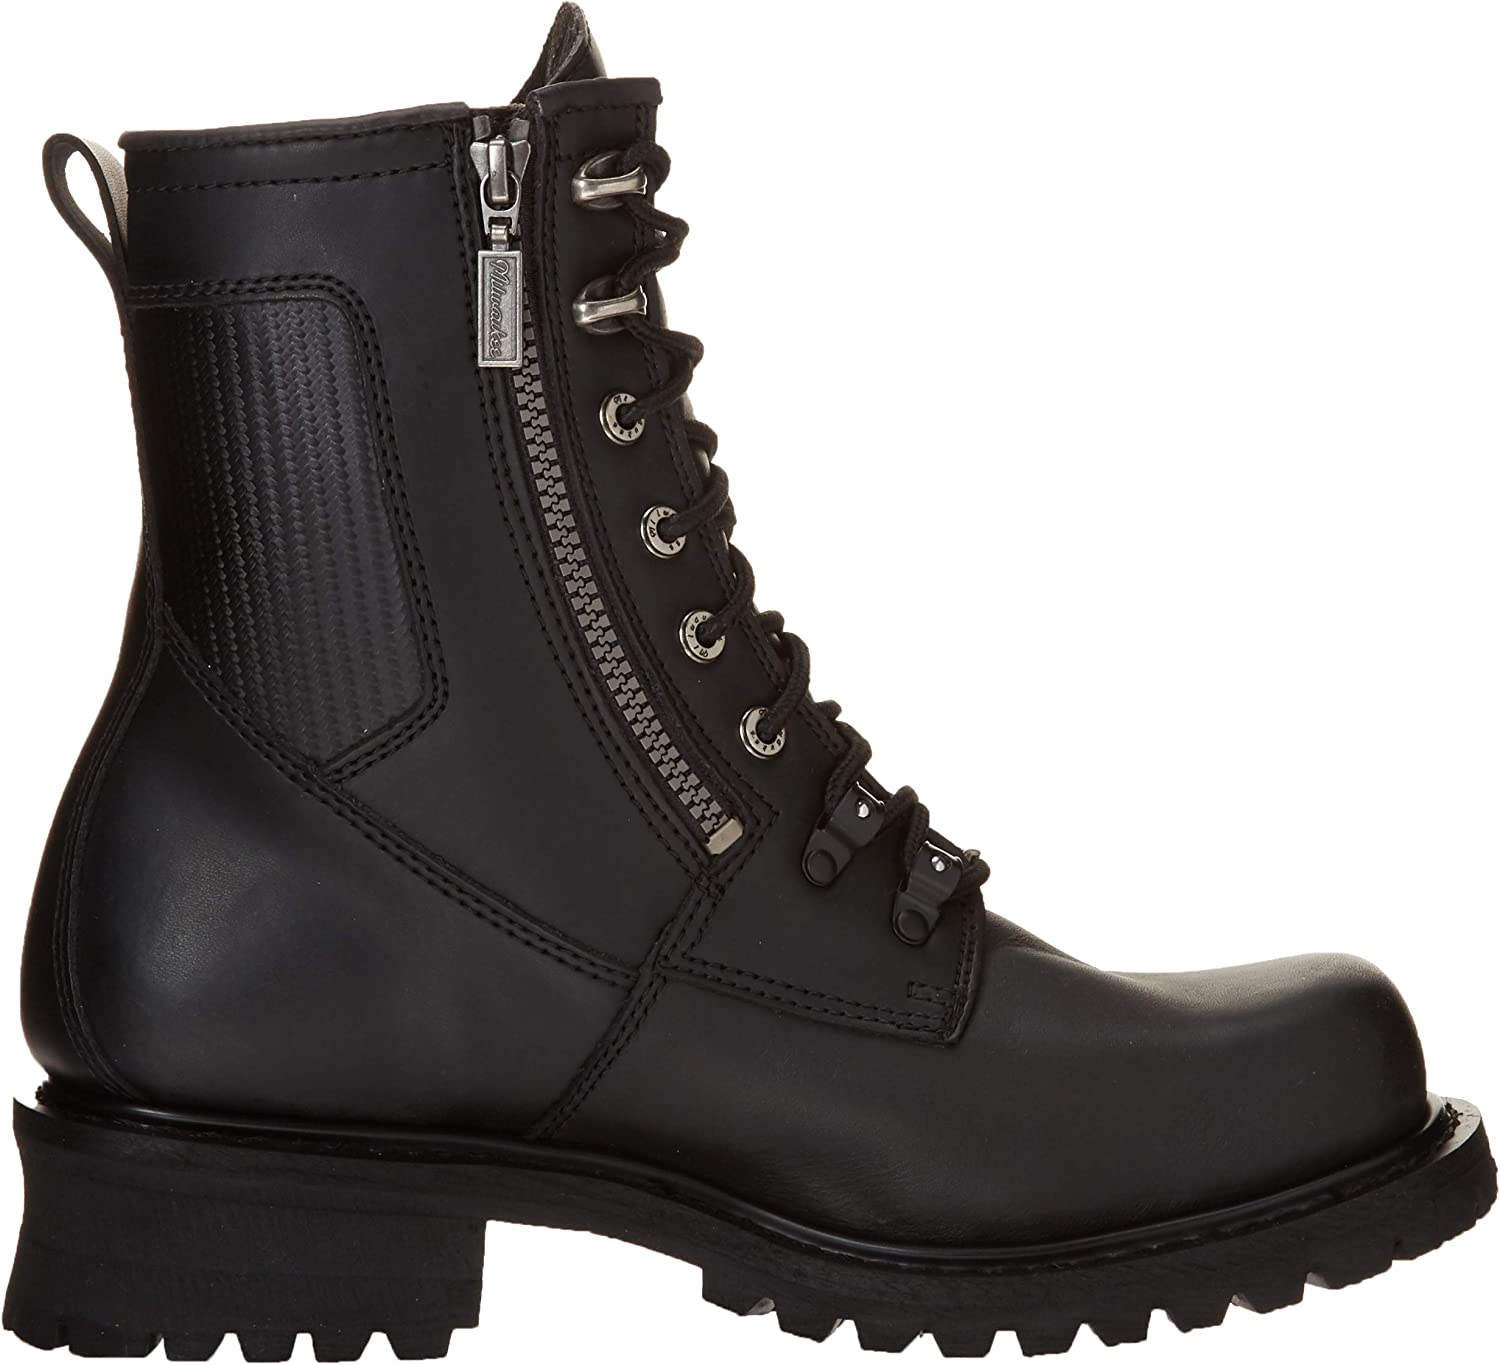 Black, Size 9.5EE Milwaukee Motorcycle Clothing Company Trooper Leather Mens Motorcycle Boots